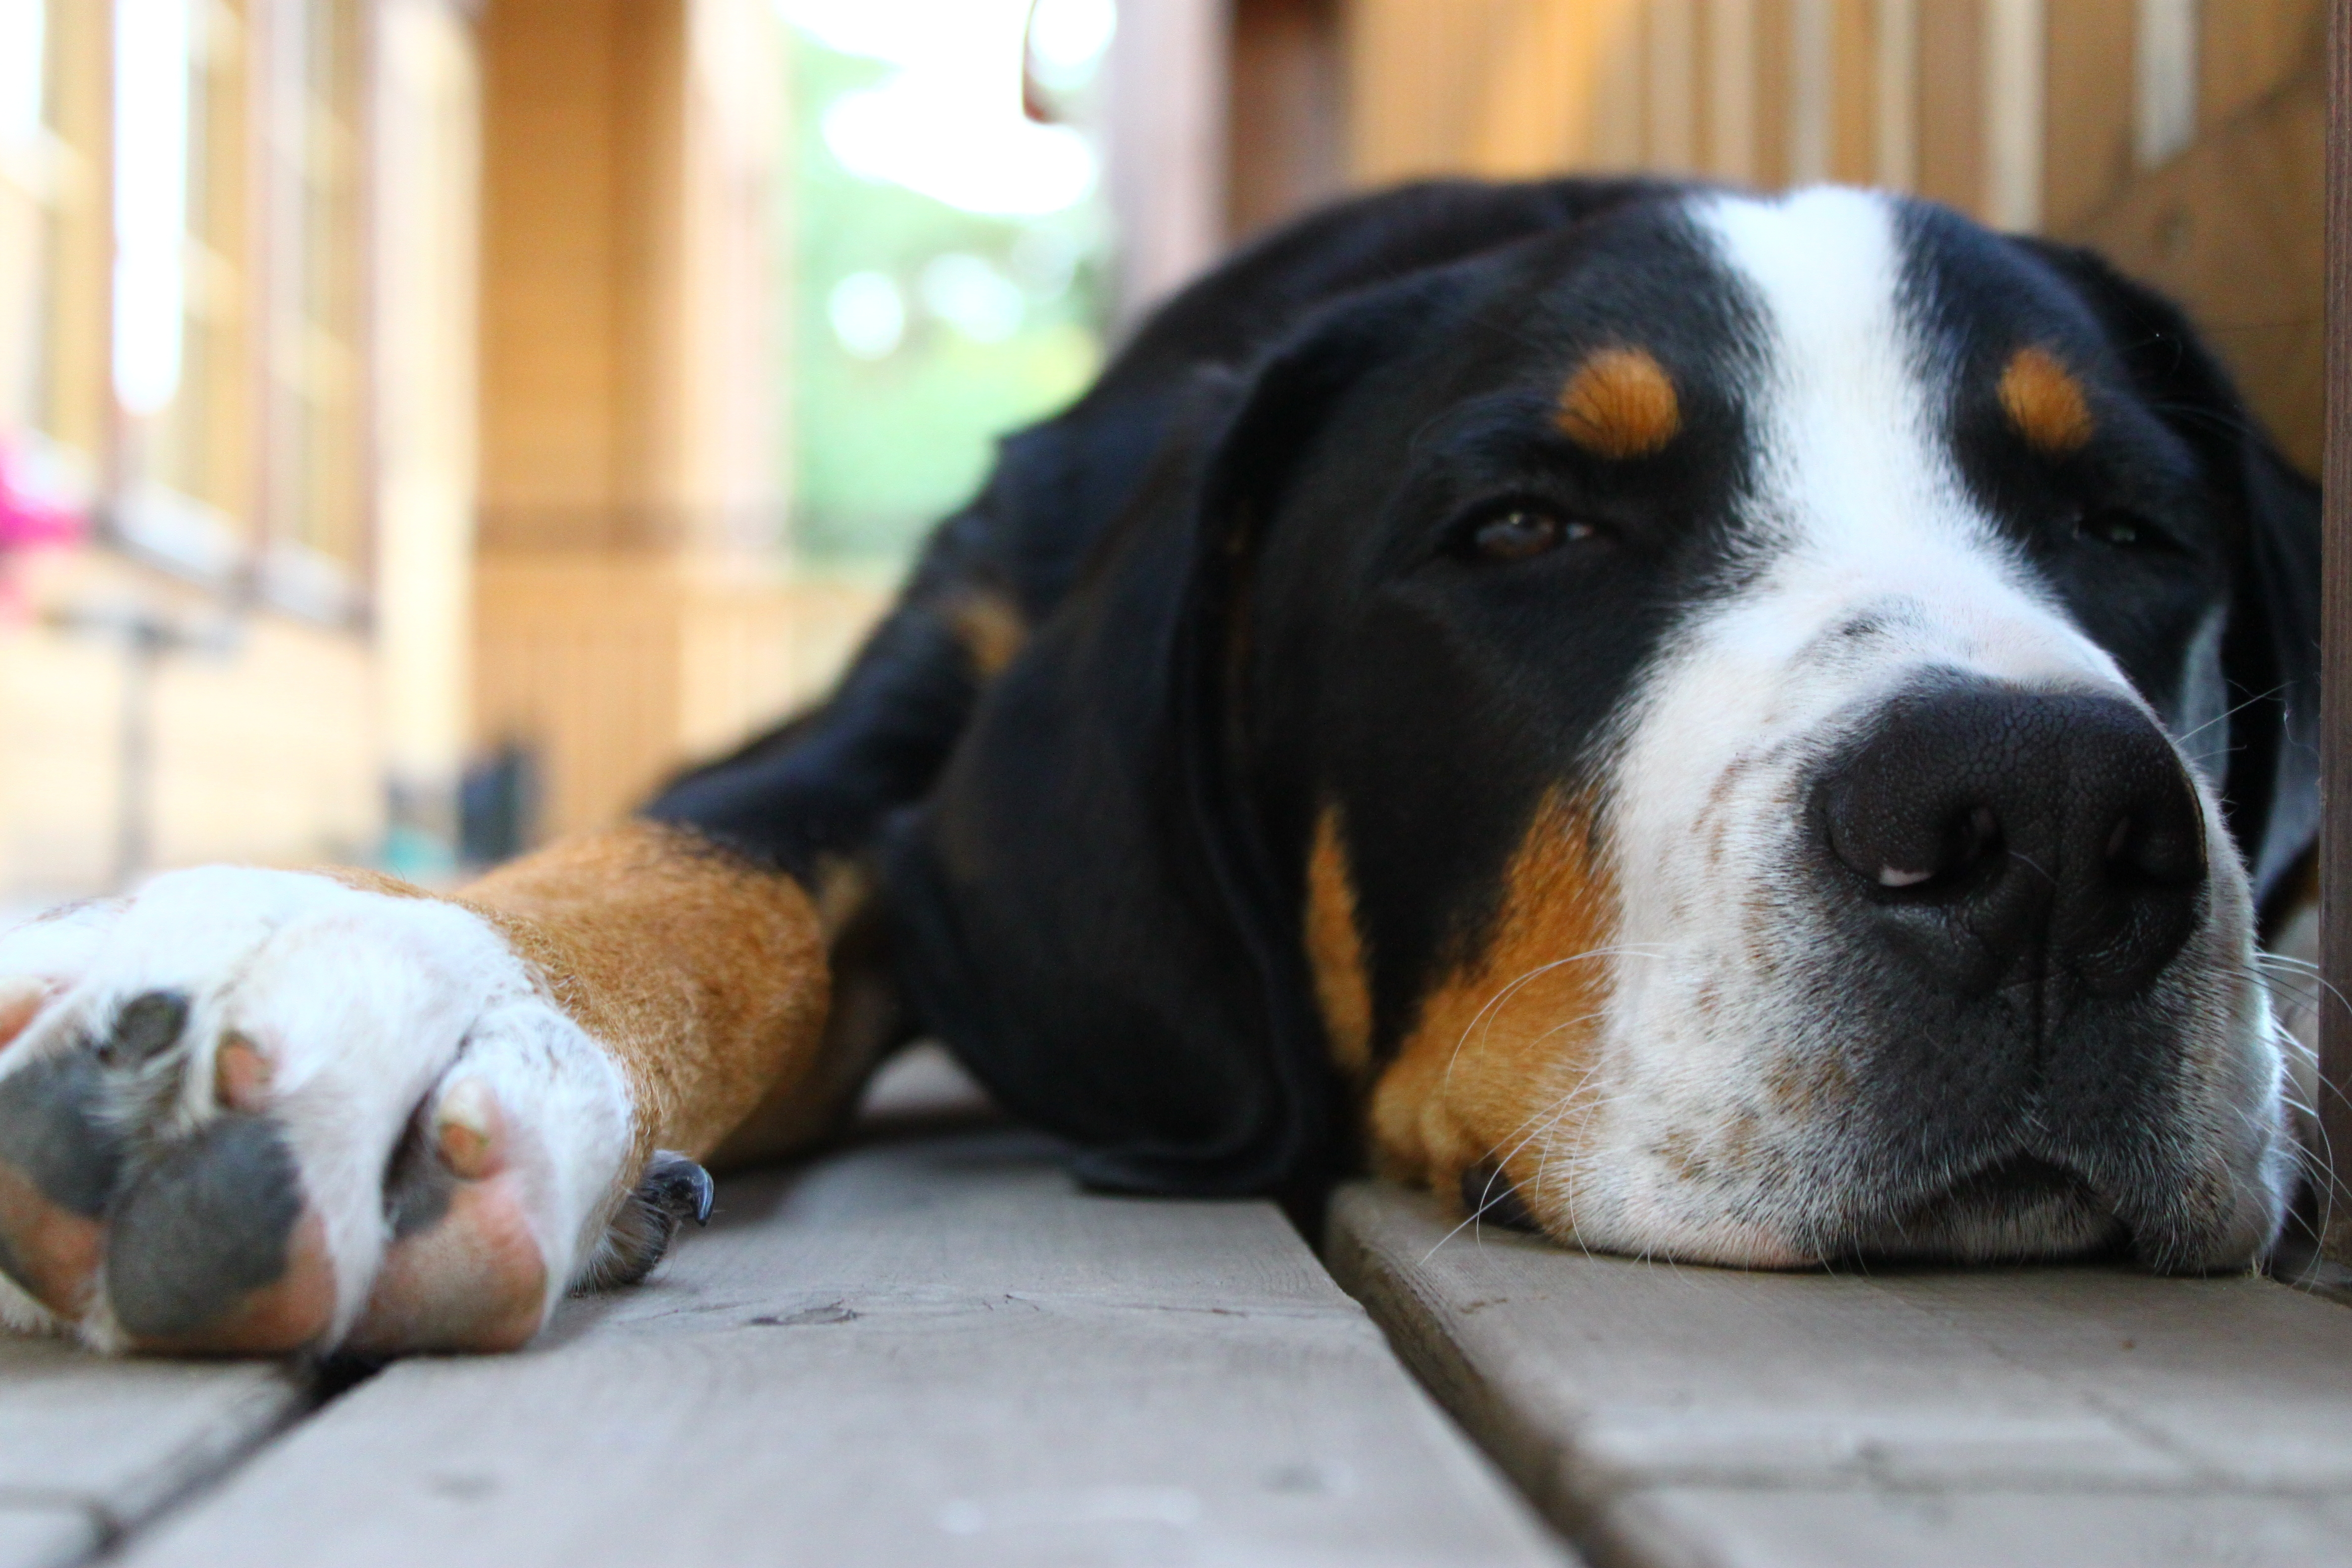 119248 download wallpaper Animals, Dog, Muzzle, Ears, Spotted, Spotty, To Lie Down, Lie screensavers and pictures for free